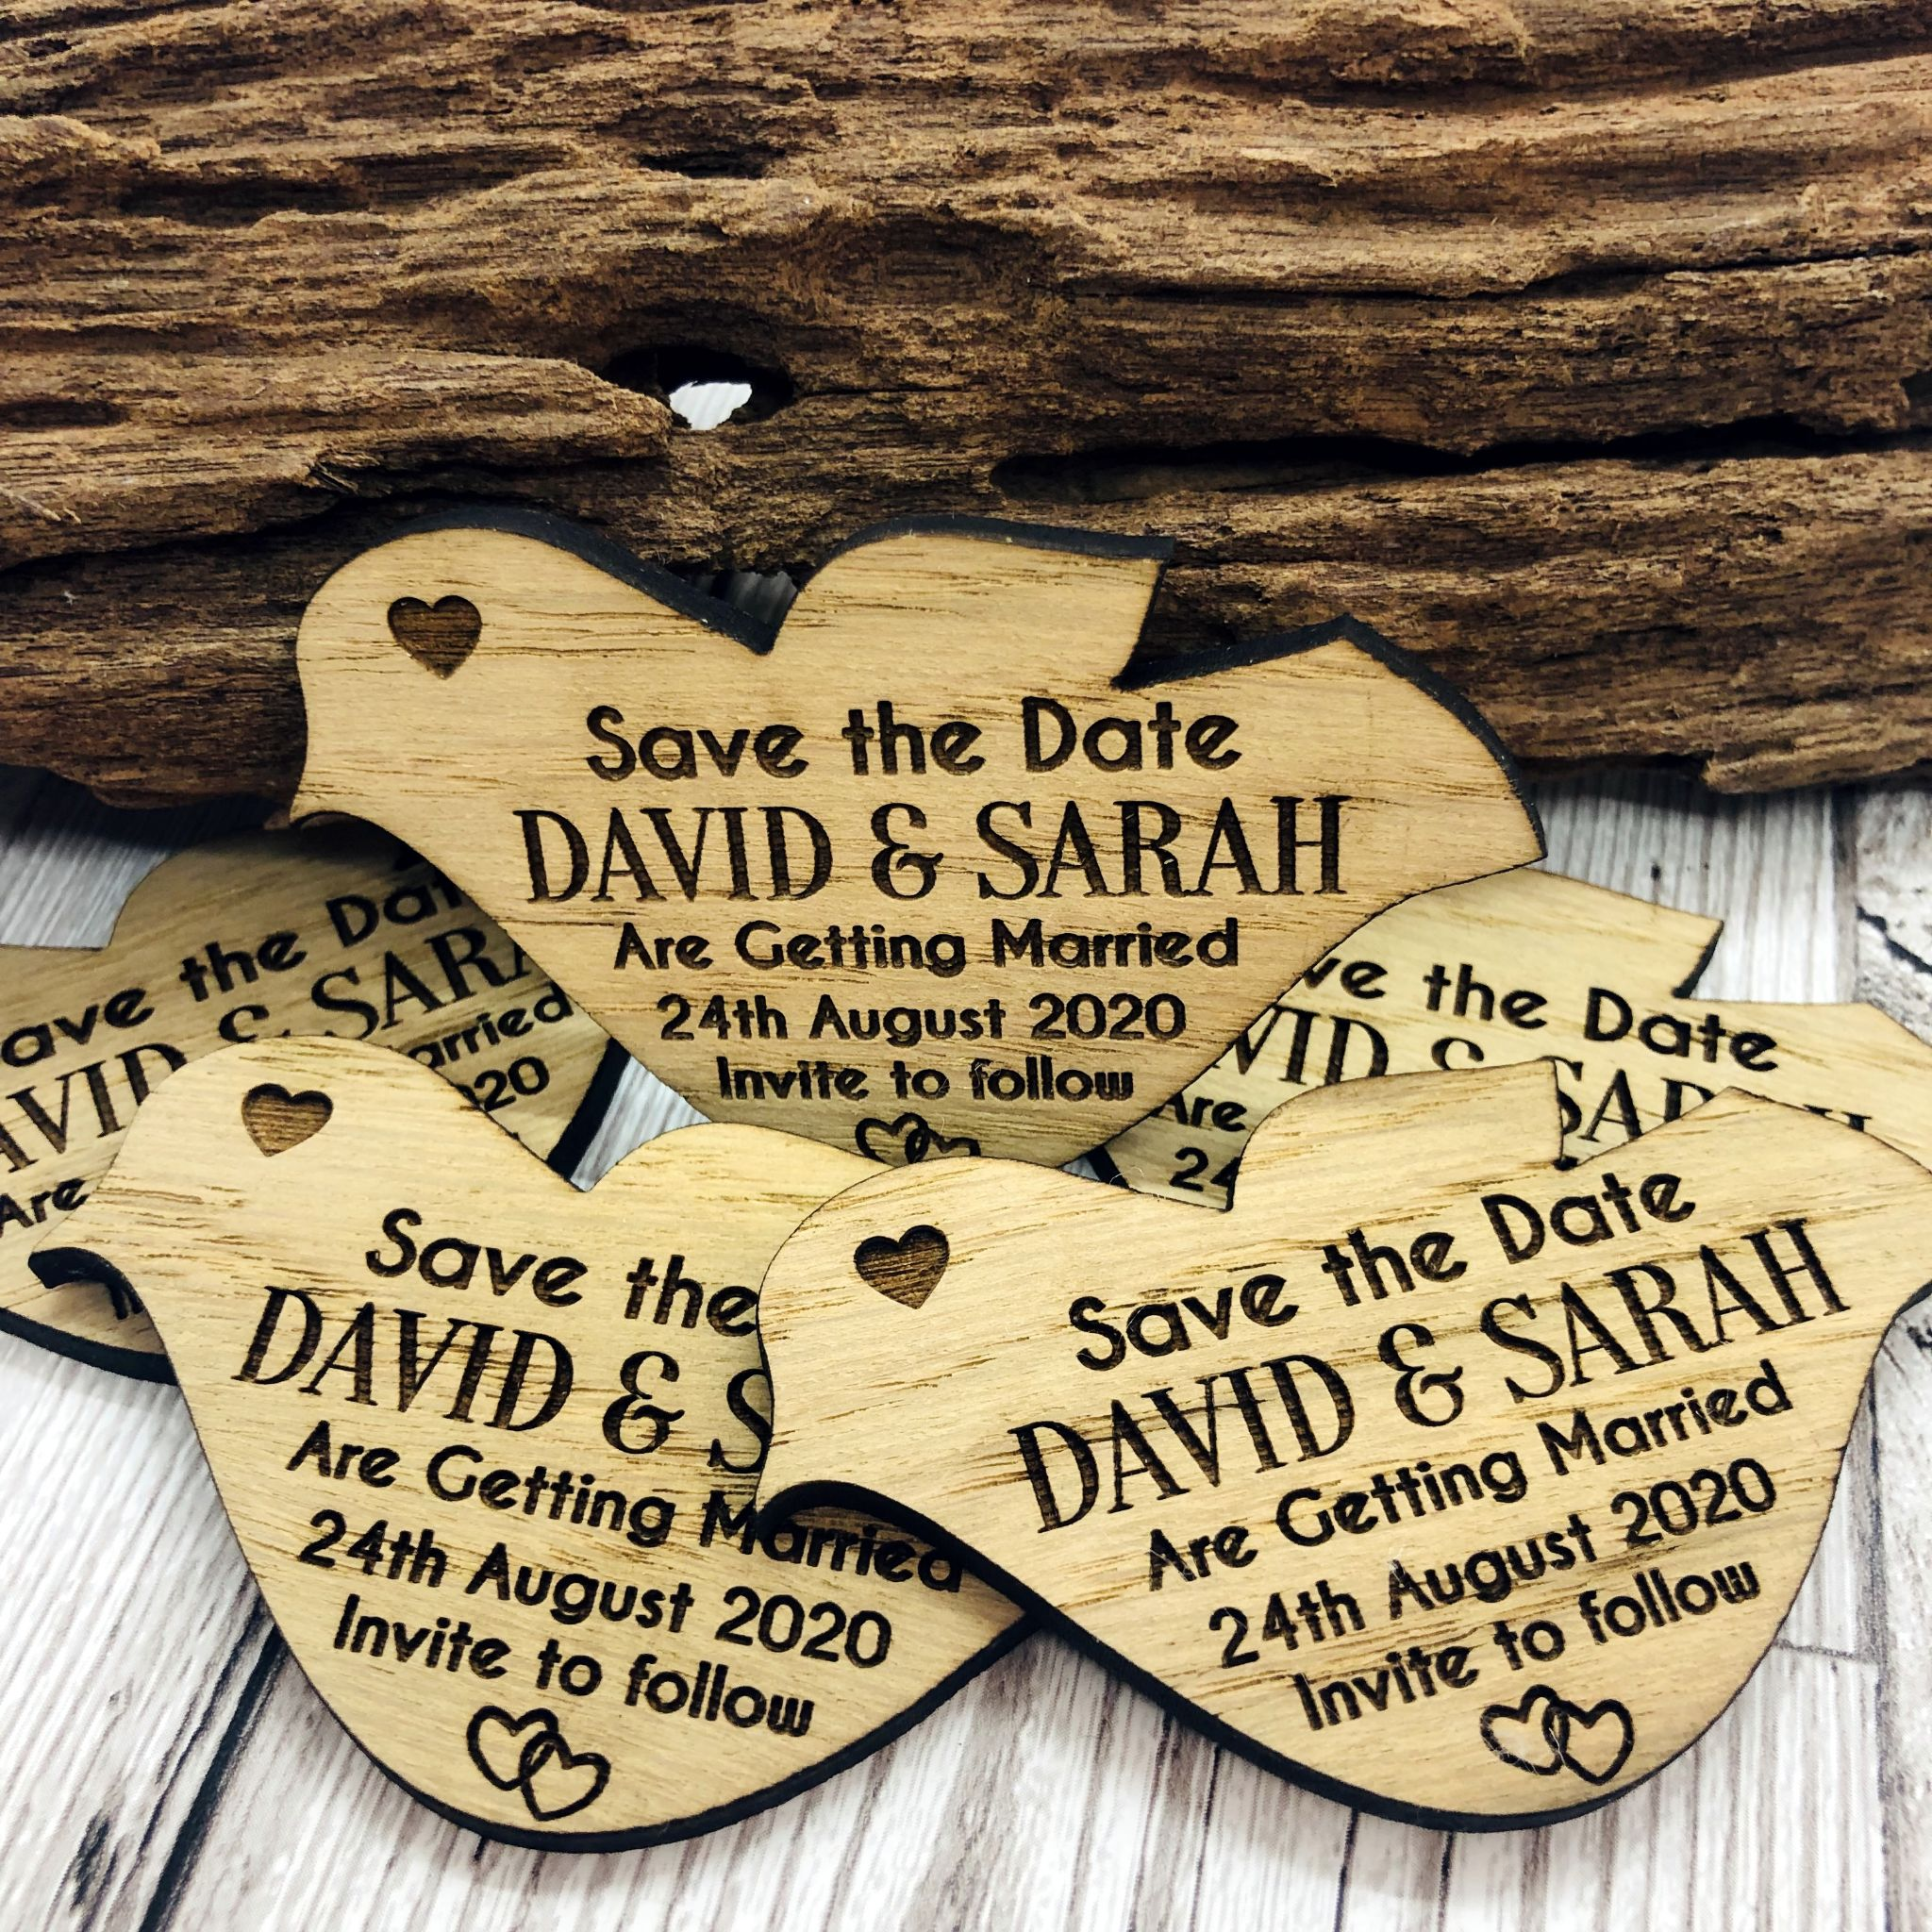 Little Gifts With Love - Personalised Engraved Rustic Wooden Oak Dove Save The Date Fridge Magnets Invites